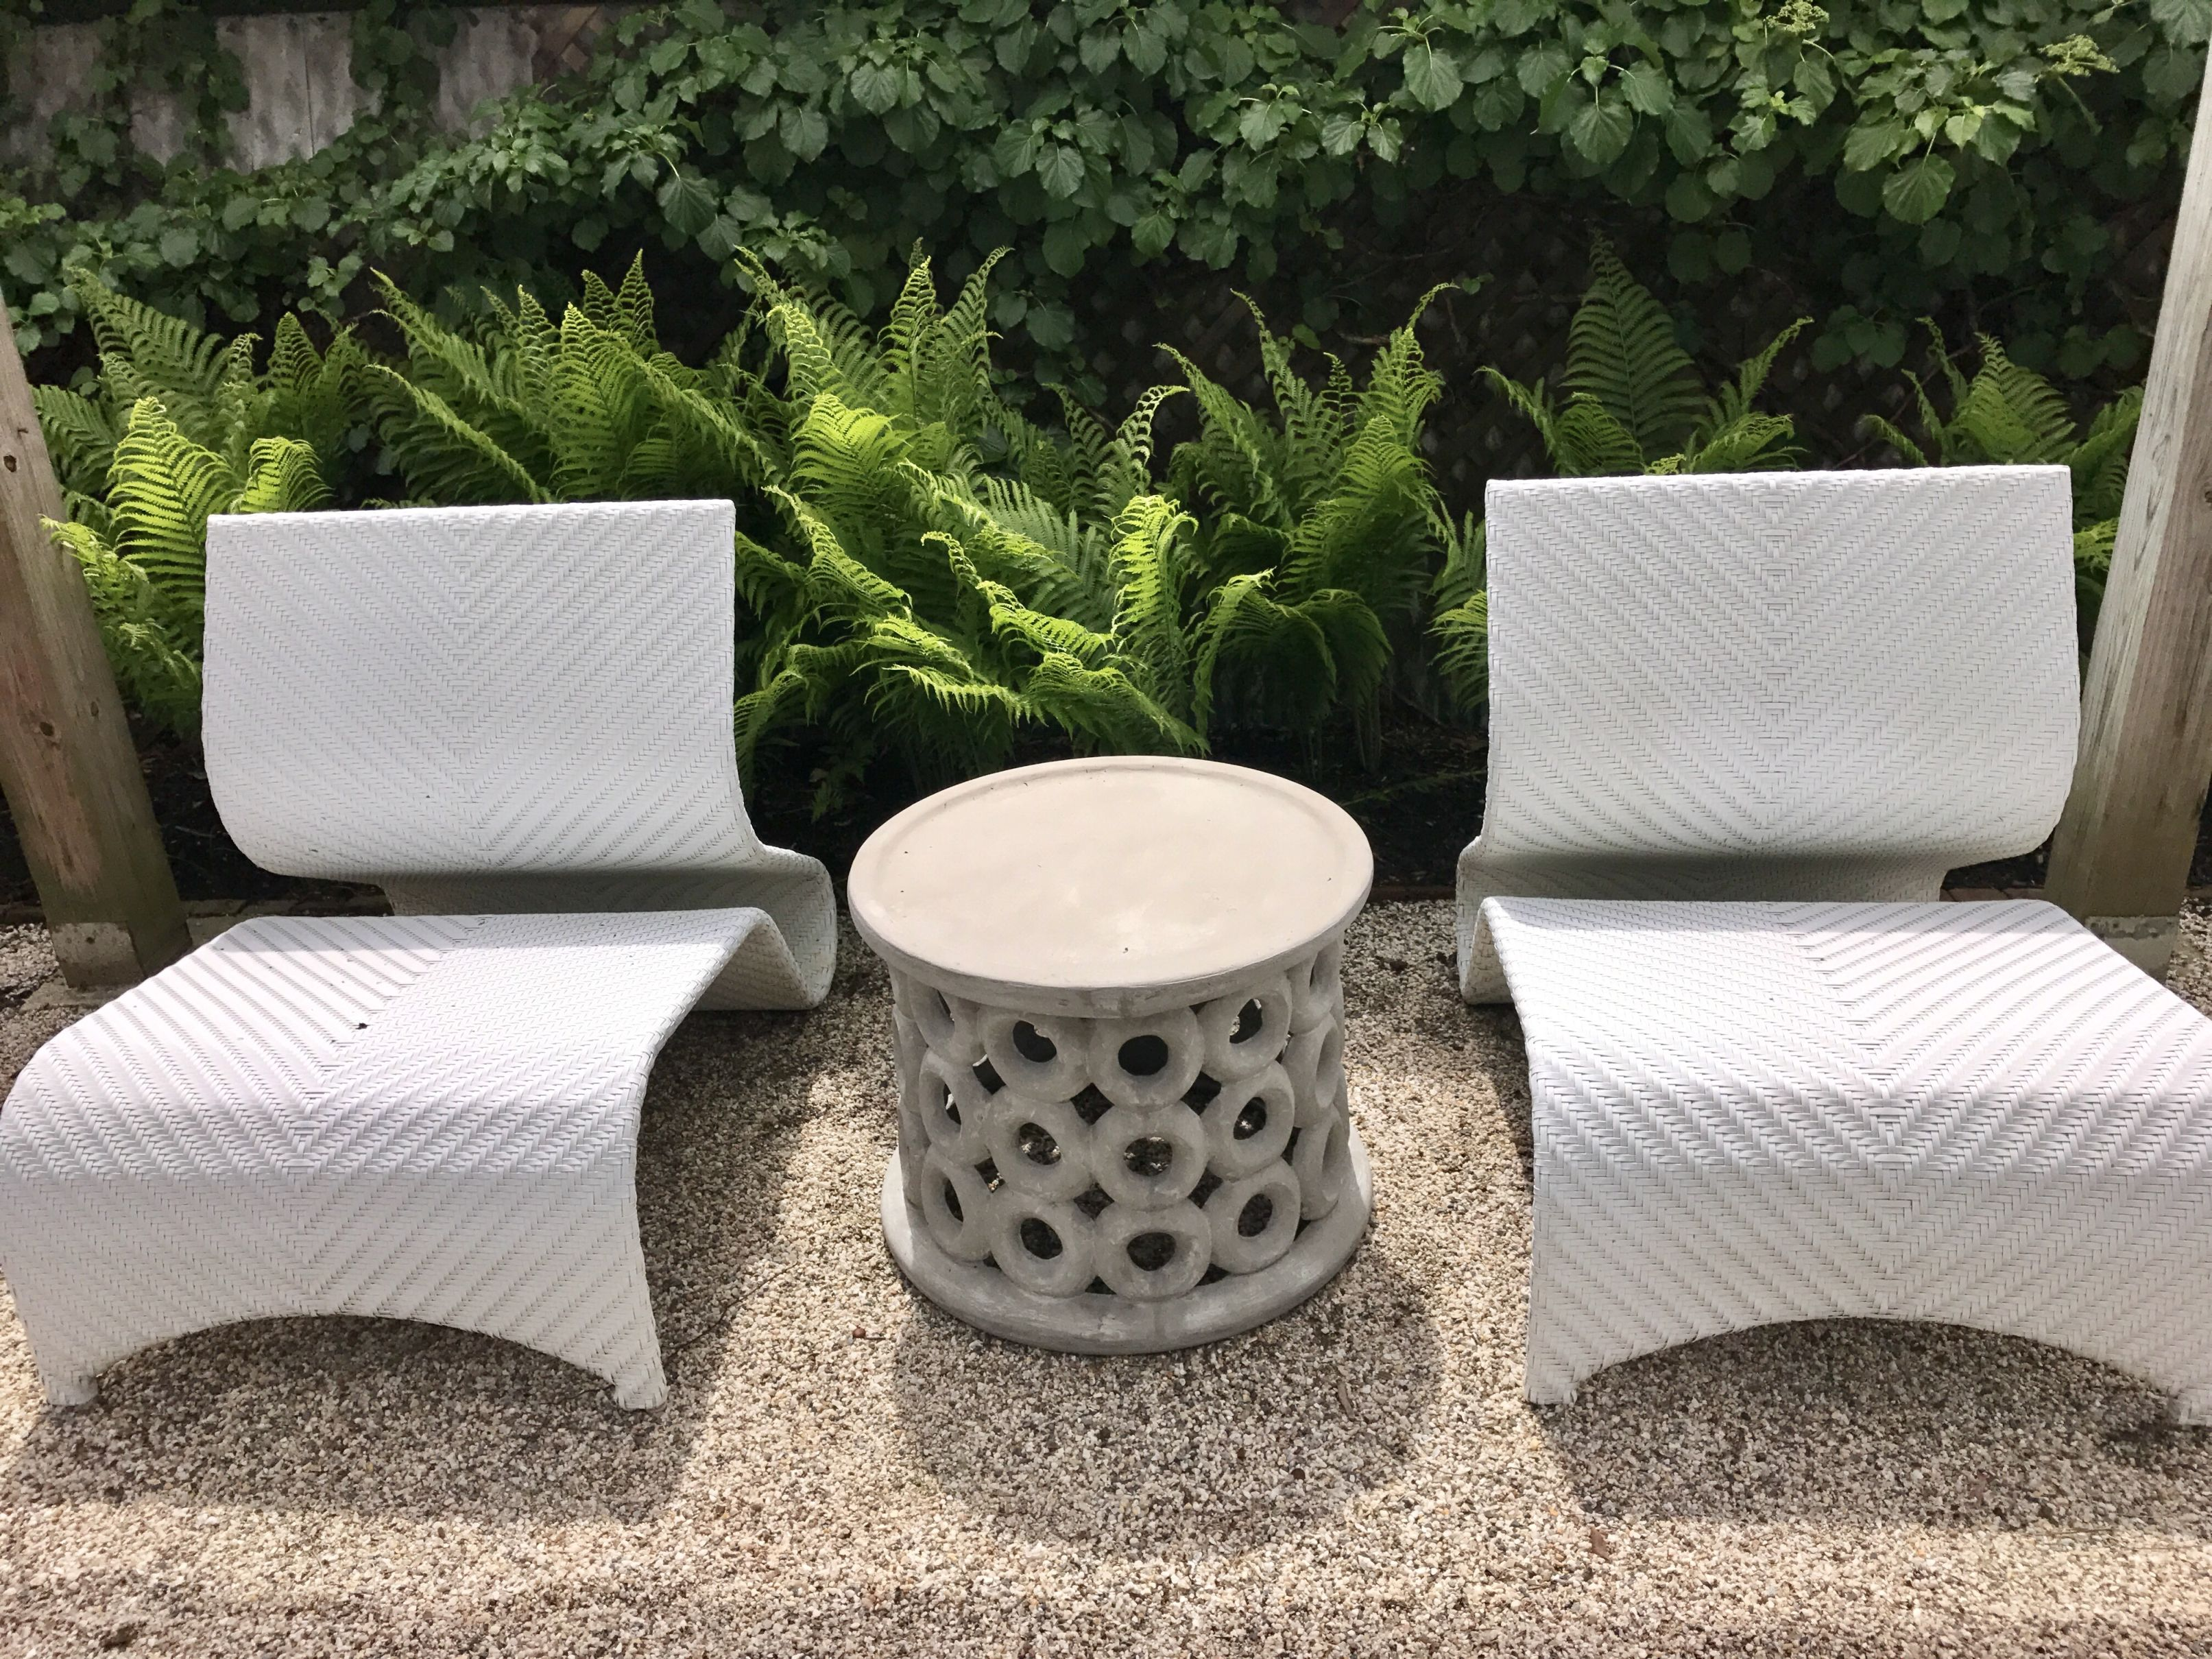 dohnet concrete outdoor side table mecox gardens fnst donut previous next glass with shelf nesting end tables ikea silver tablecloth martin home office furniture natural wood